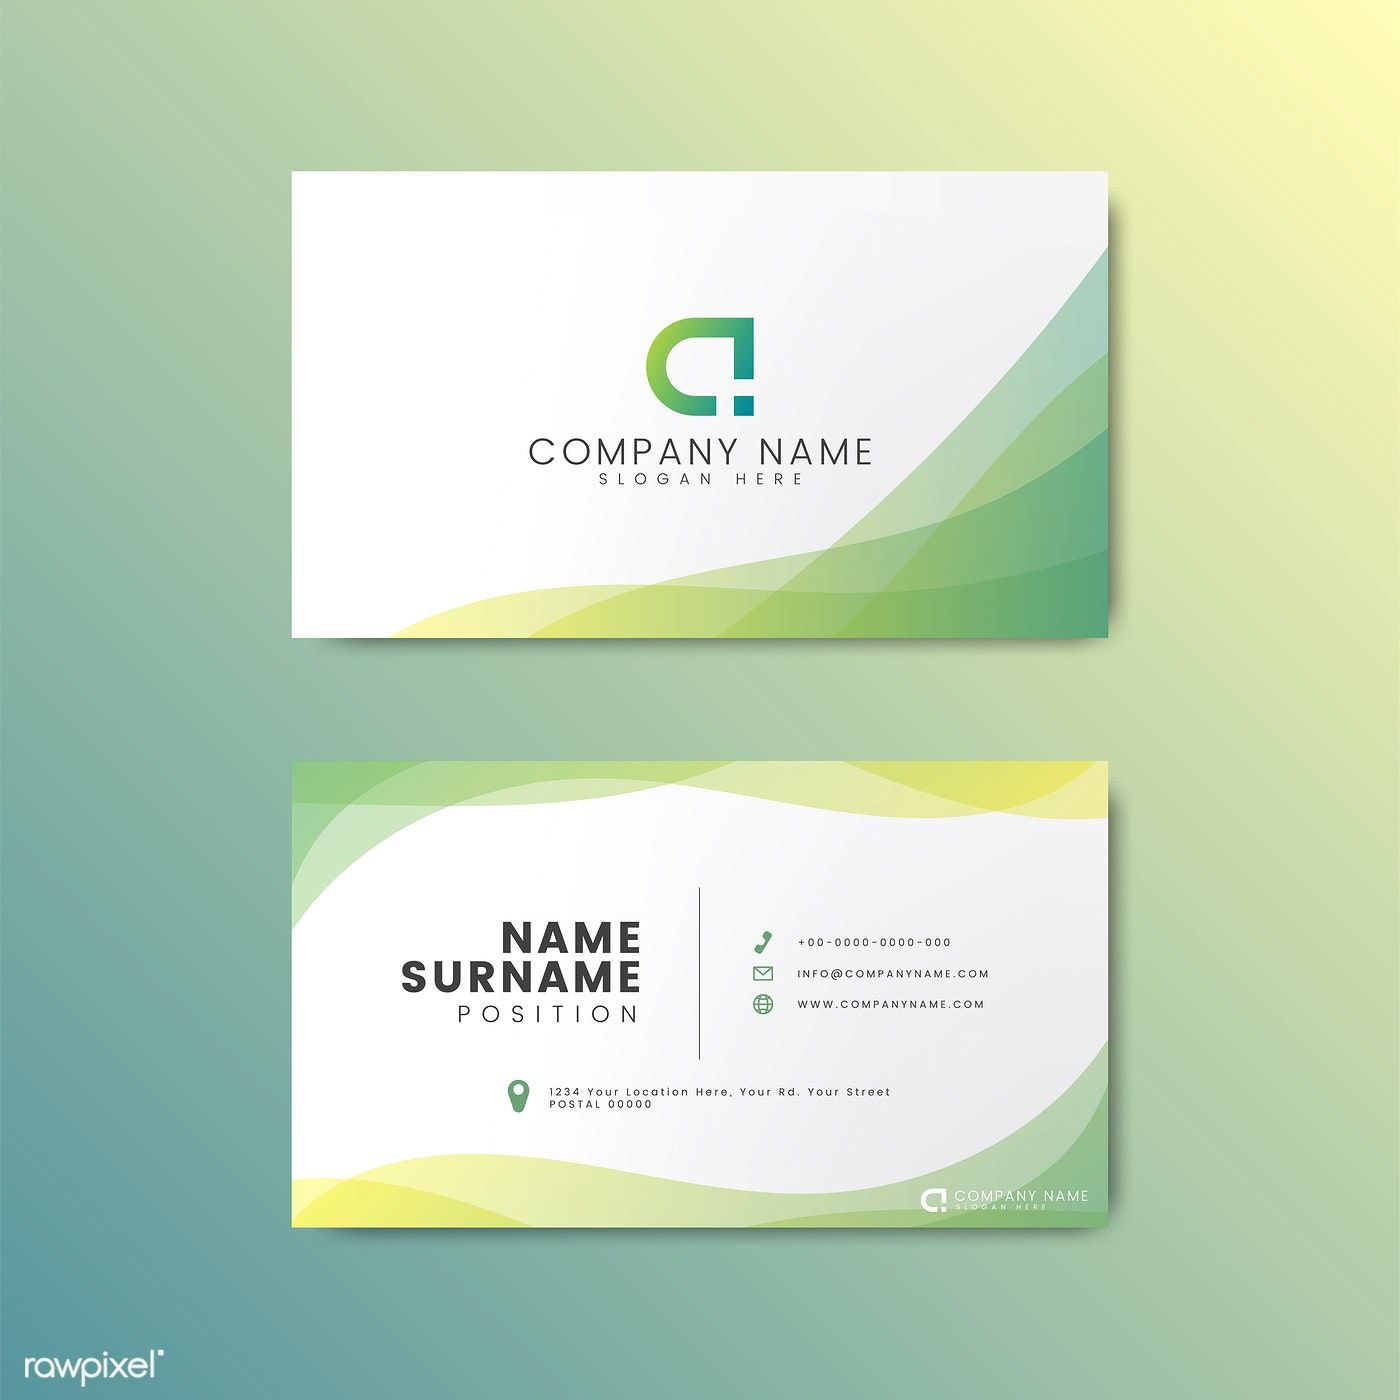 Download Premium Vector Of Minimal Modern Business Card Design Featuring Modern Business Cards Modern Business Cards Design Vector Business Card